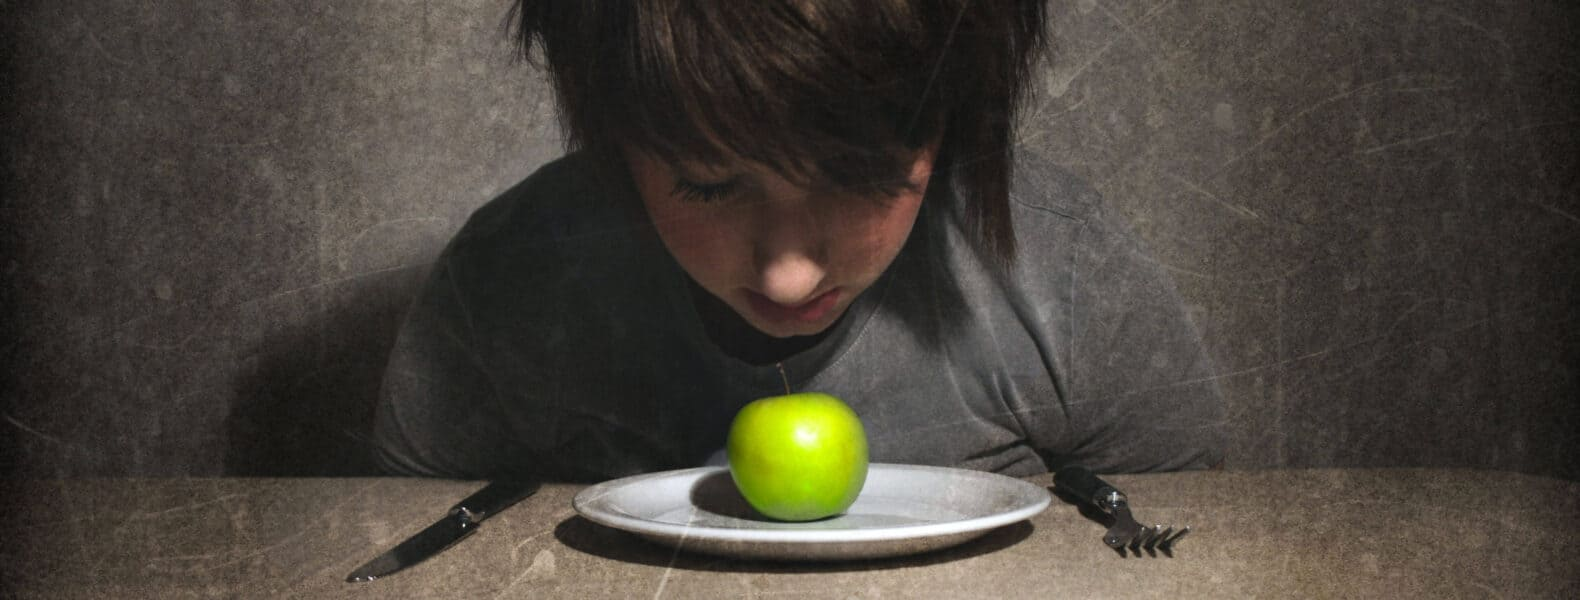 A girl with long hair wearing a gray shirt sitting at a table staring down at a green apple on a plate